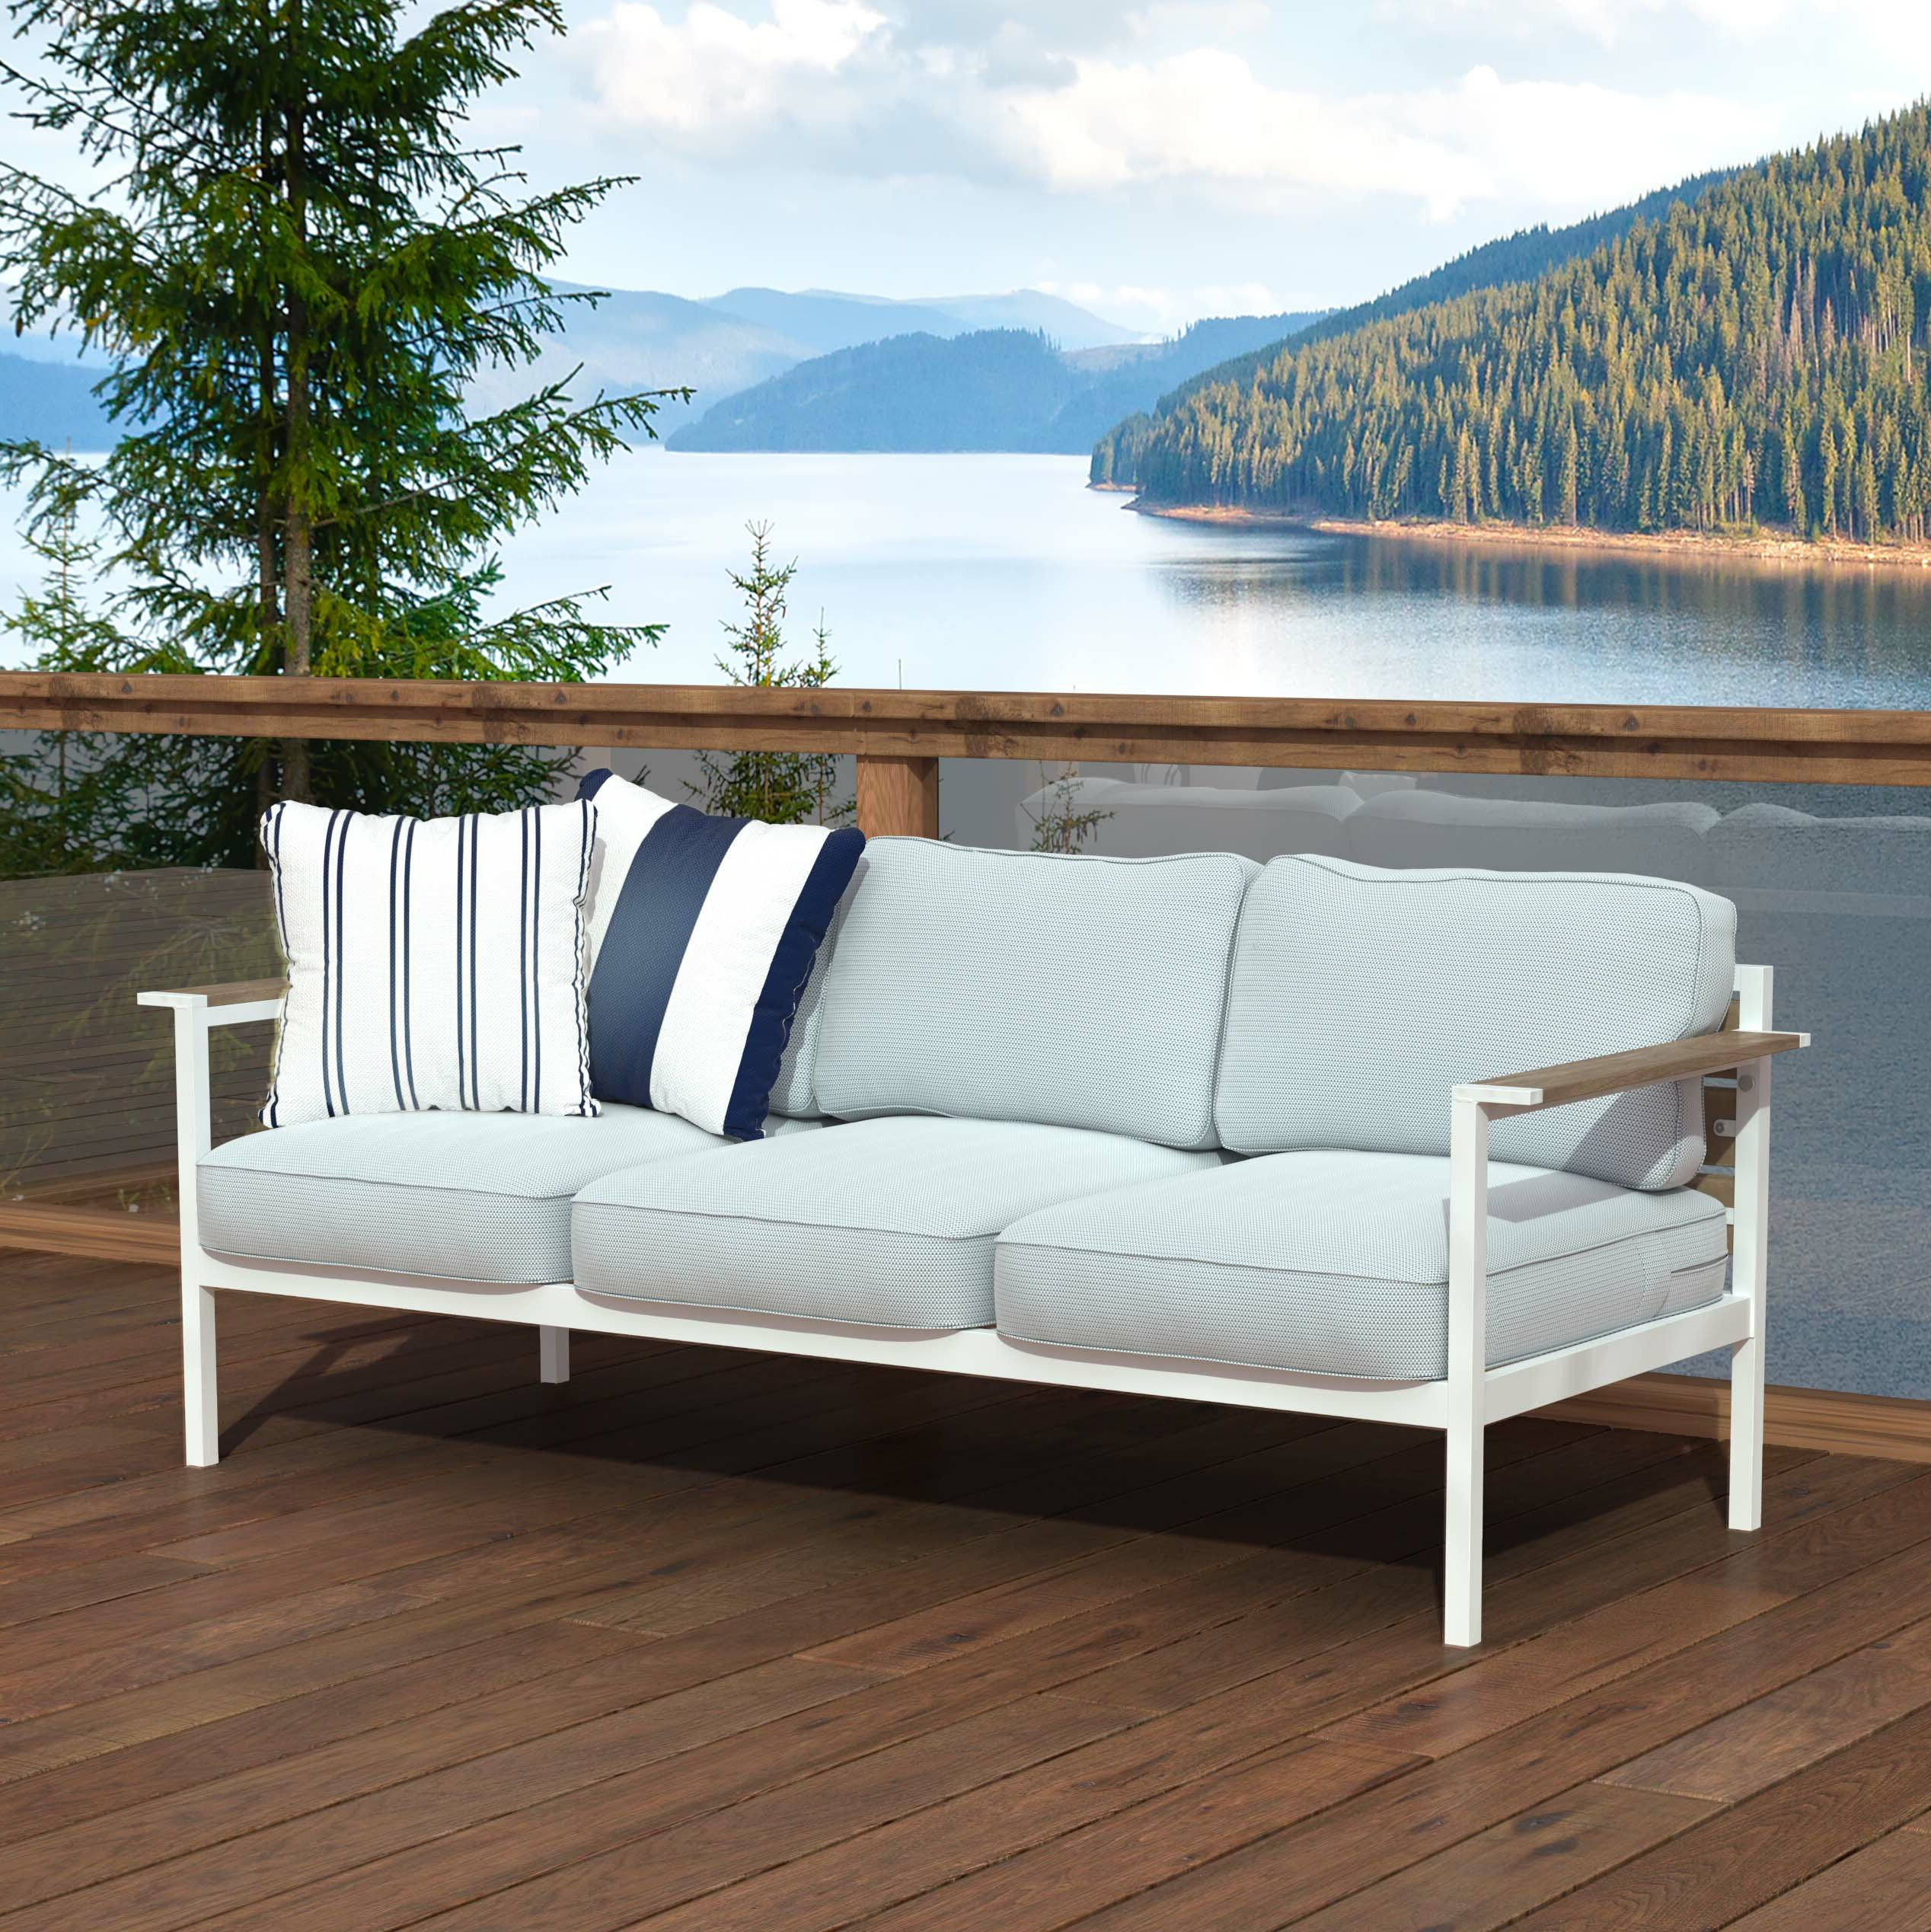 Best And Newest O'kean Teak Patio Sofas With Cushions With Regard To Kayser Patio Sofa With Cushions (View 6 of 25)